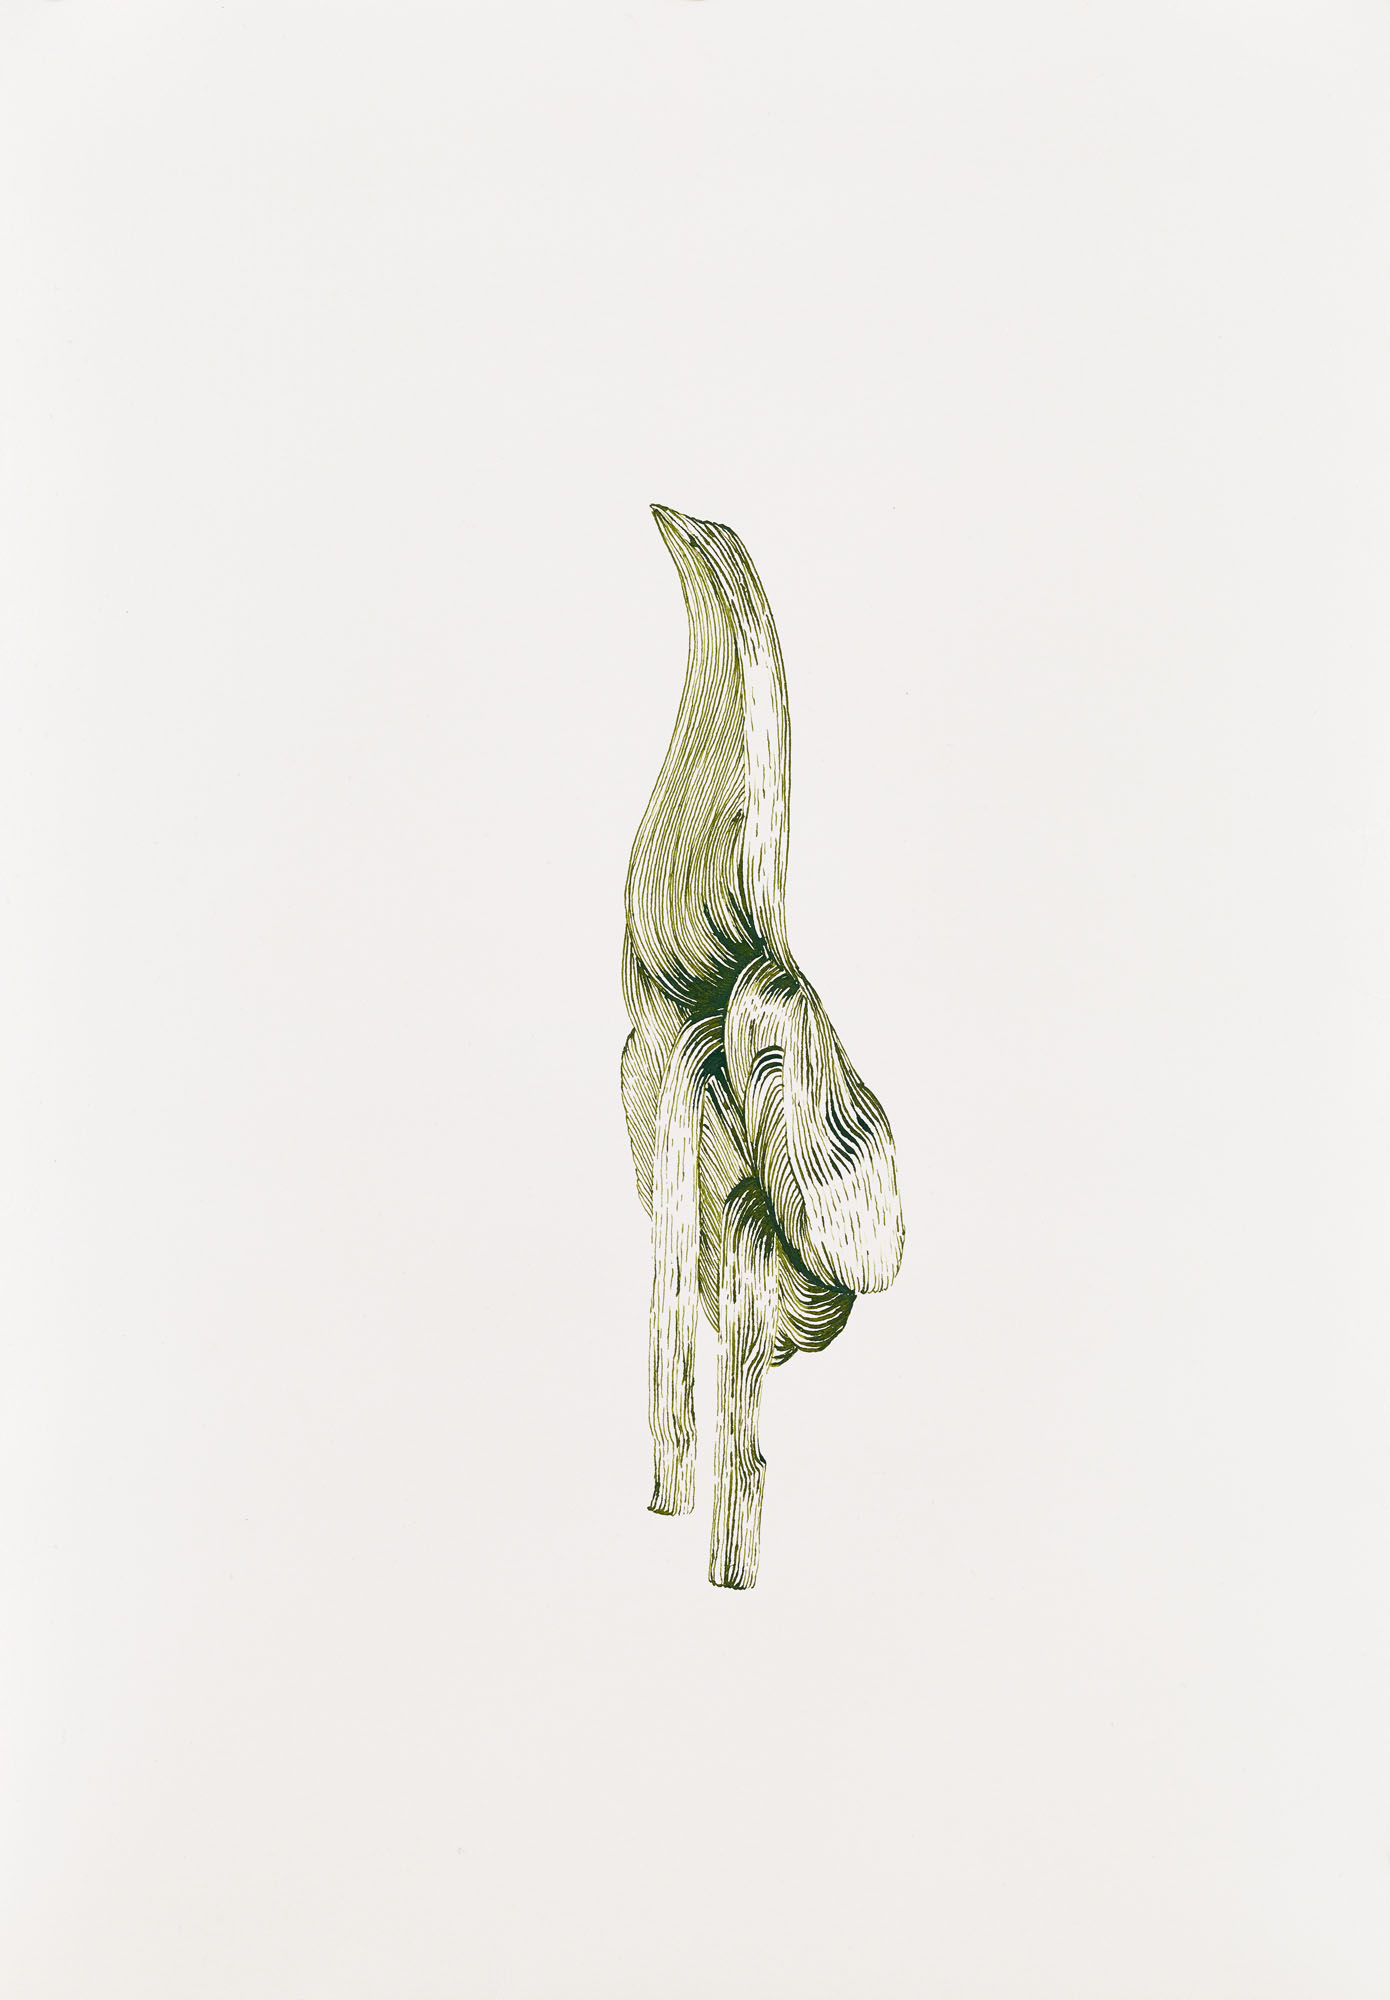 BK P165 | untitled | green ink on paper | 42x29cm | 2013 | PRIVAT COLLECTION BERLIN